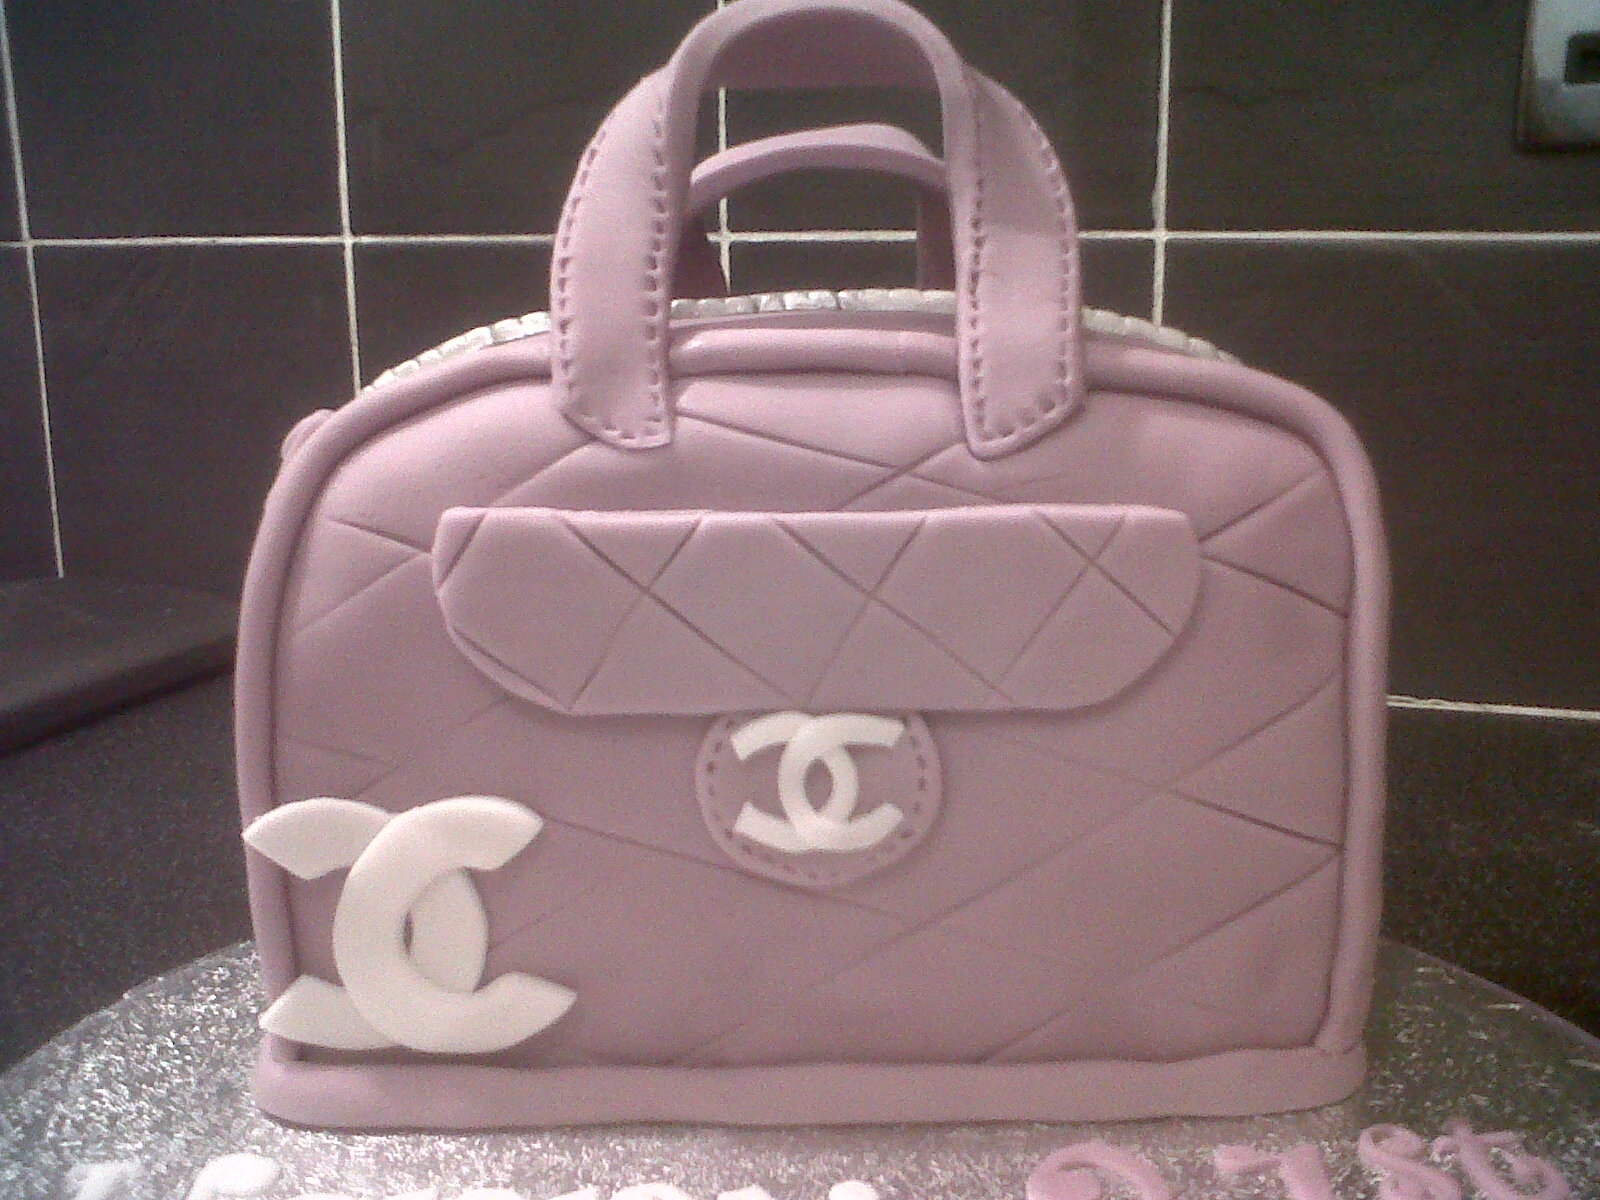 Lilac Coco Chanel Handbag Birthday Cake 21st Birthday